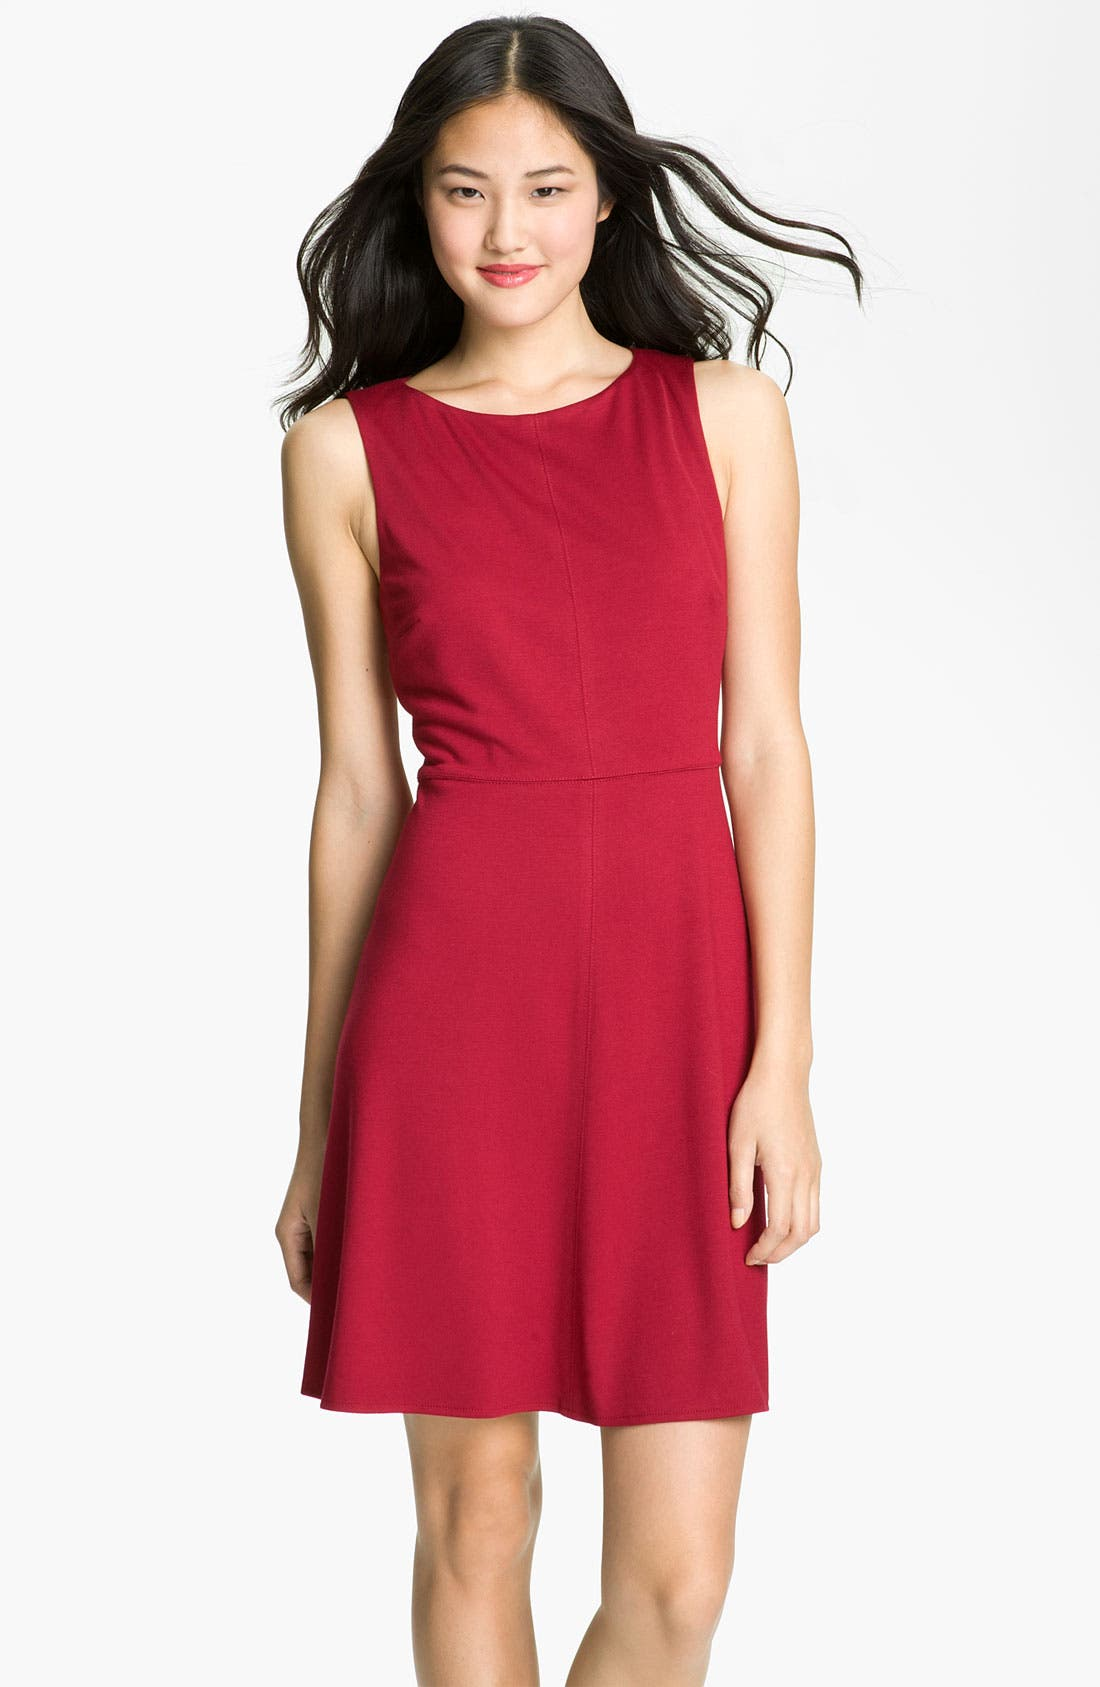 Alternate Image 1 Selected - Donna Morgan 'Mod' Exposed Zipper Fit & Flare Dress